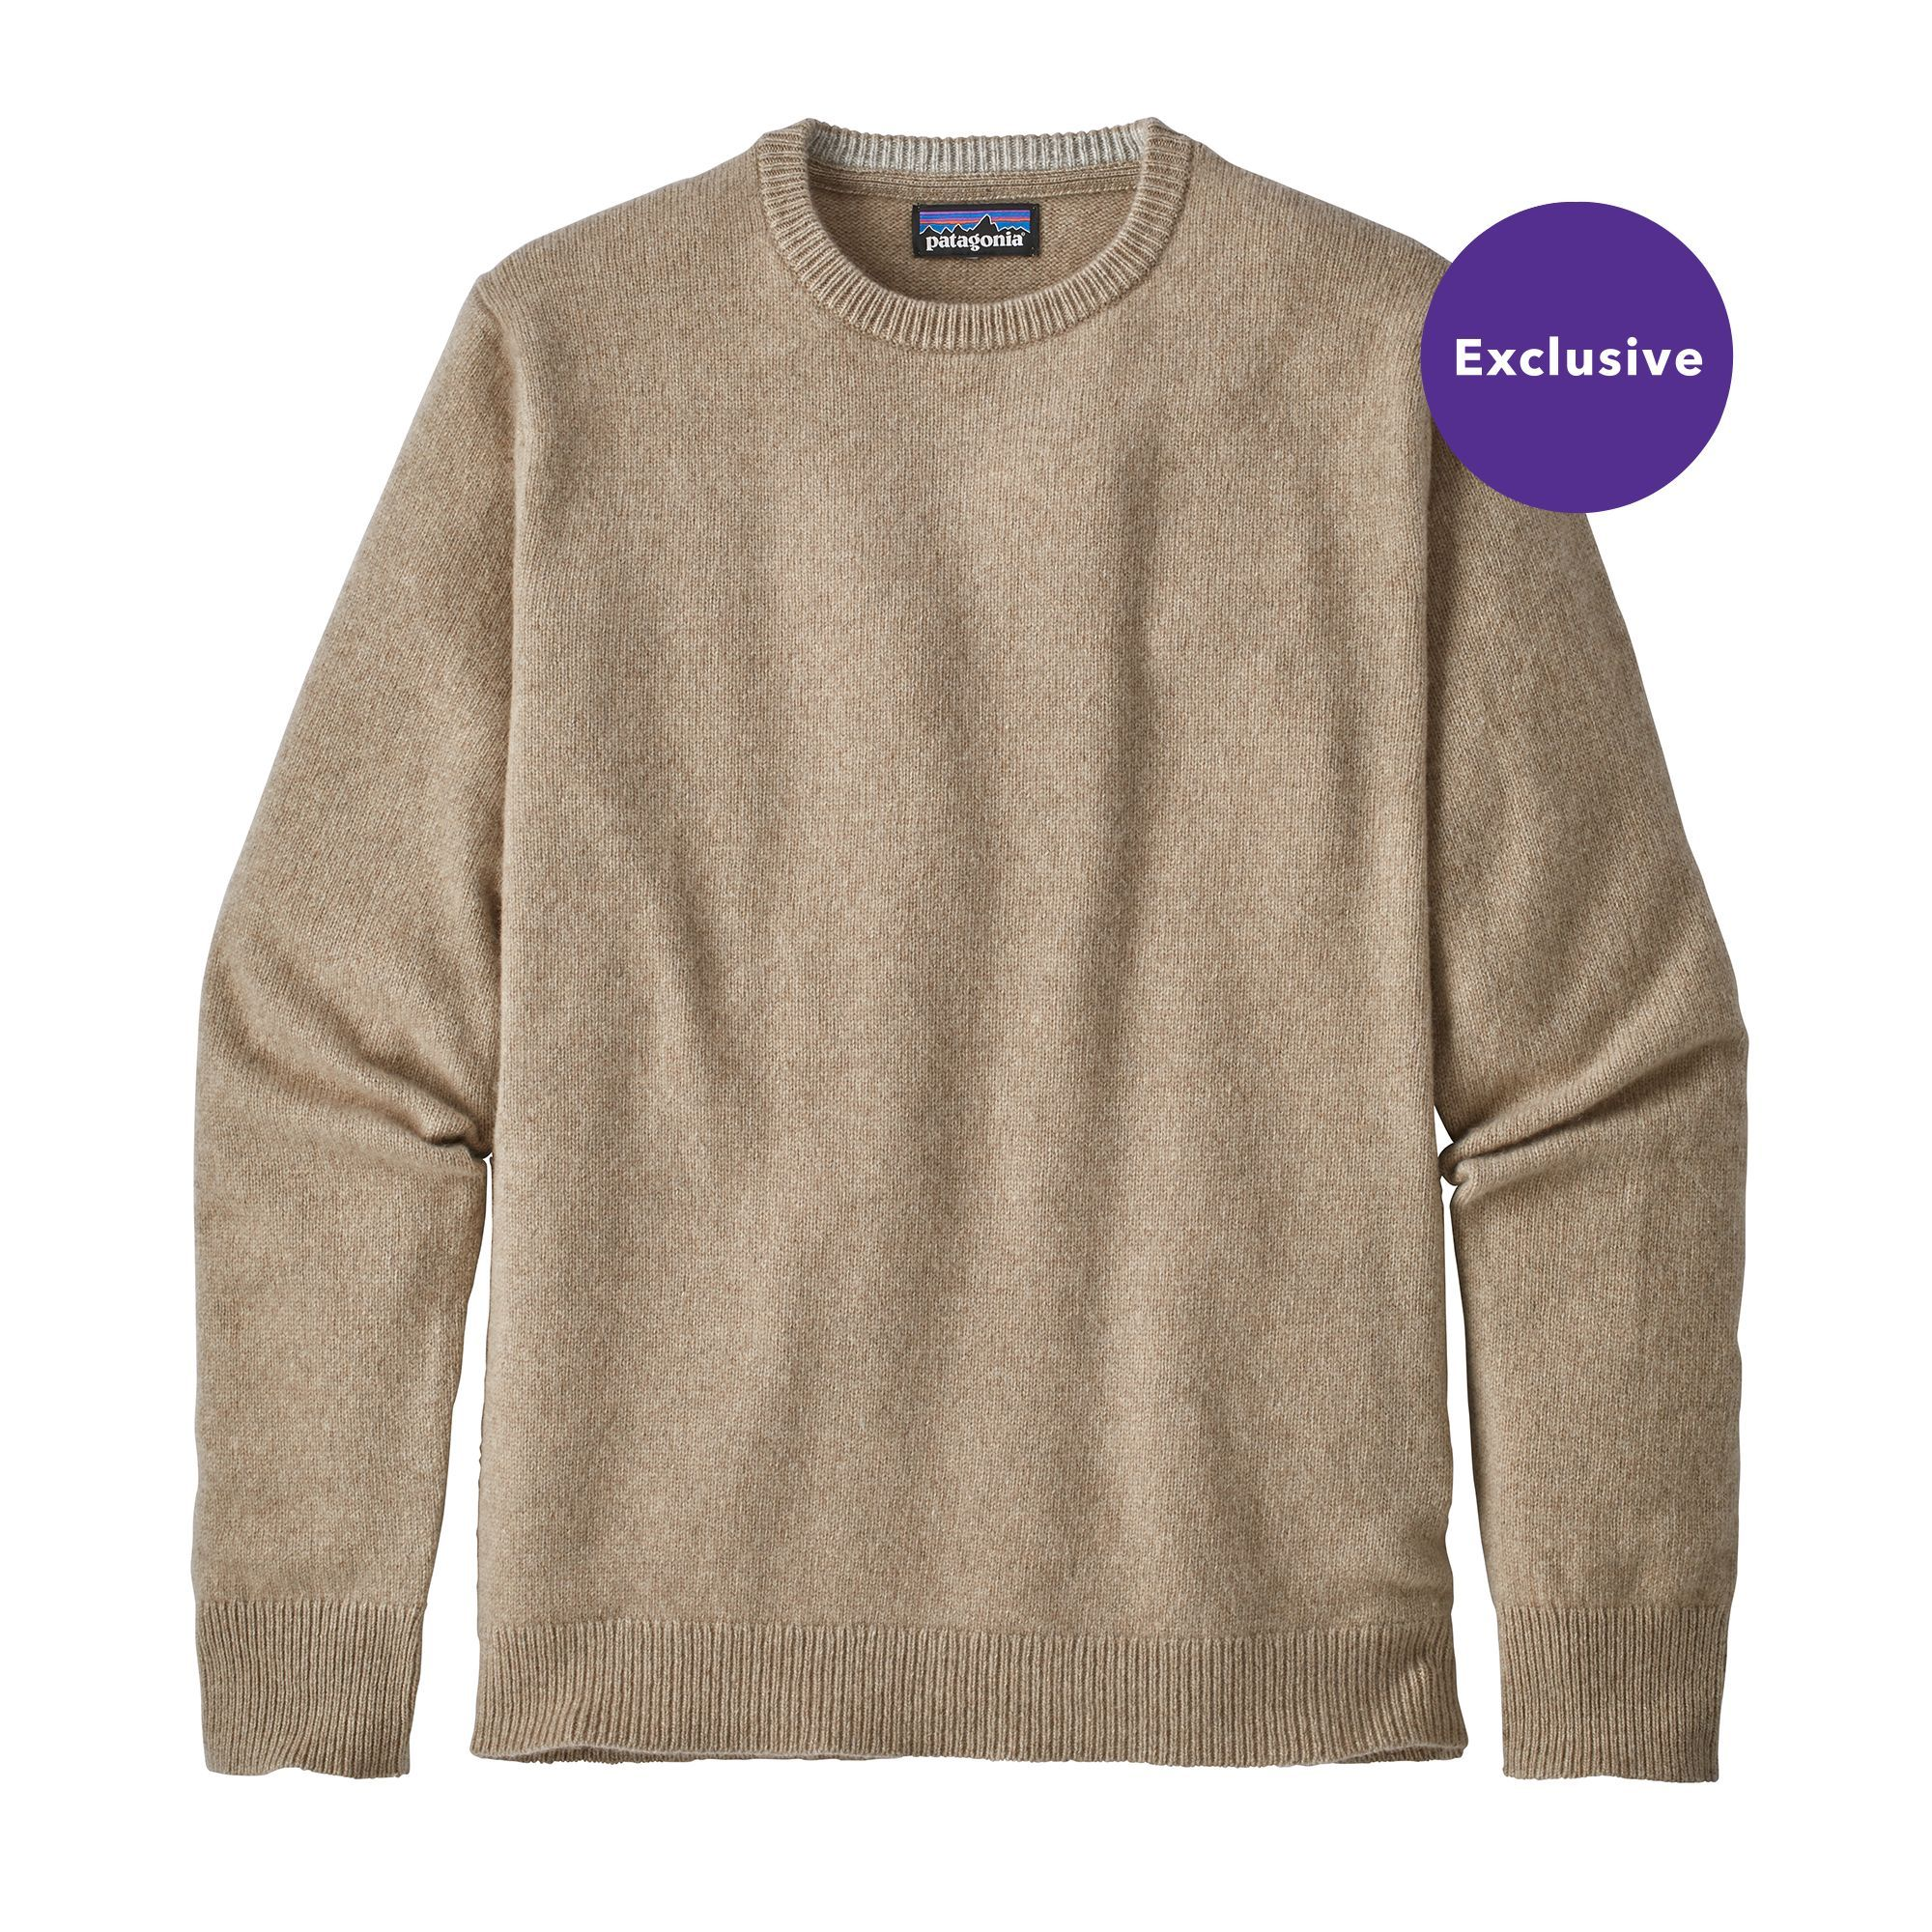 4edeb3ba23a Patagonia Men s Recycled Cashmere Crewneck Sweater